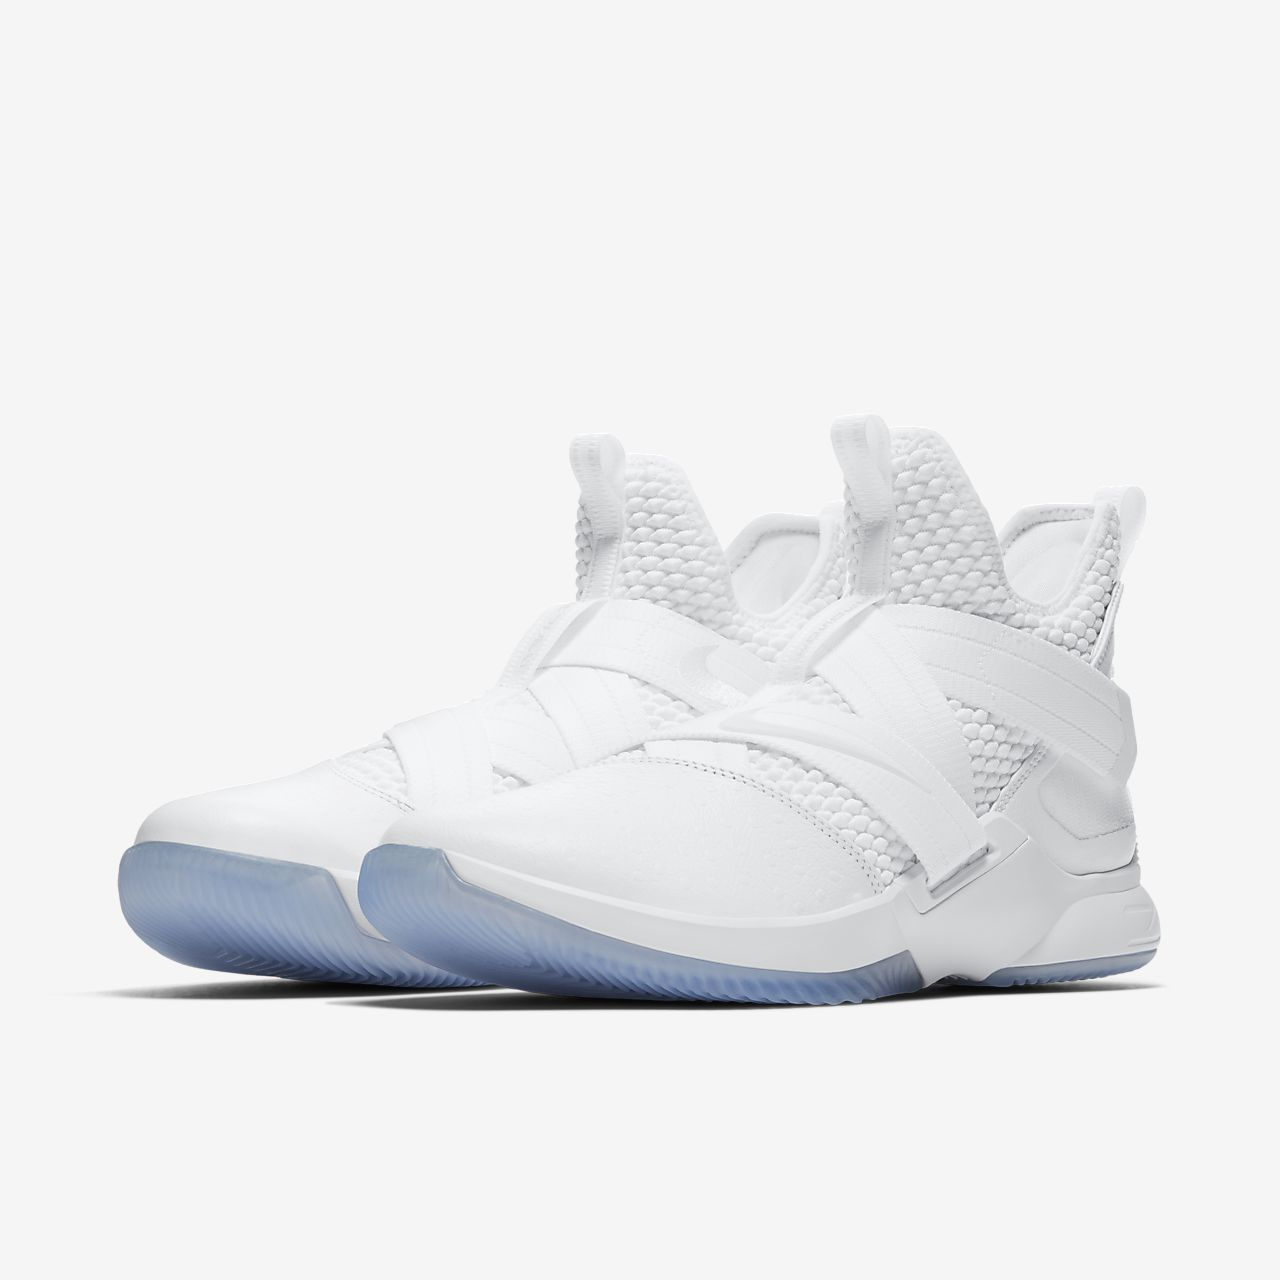 019b4330f156 Low Resolution LeBron Soldier 12 SFG Basketballschuh LeBron Soldier 12 SFG  Basketballschuh